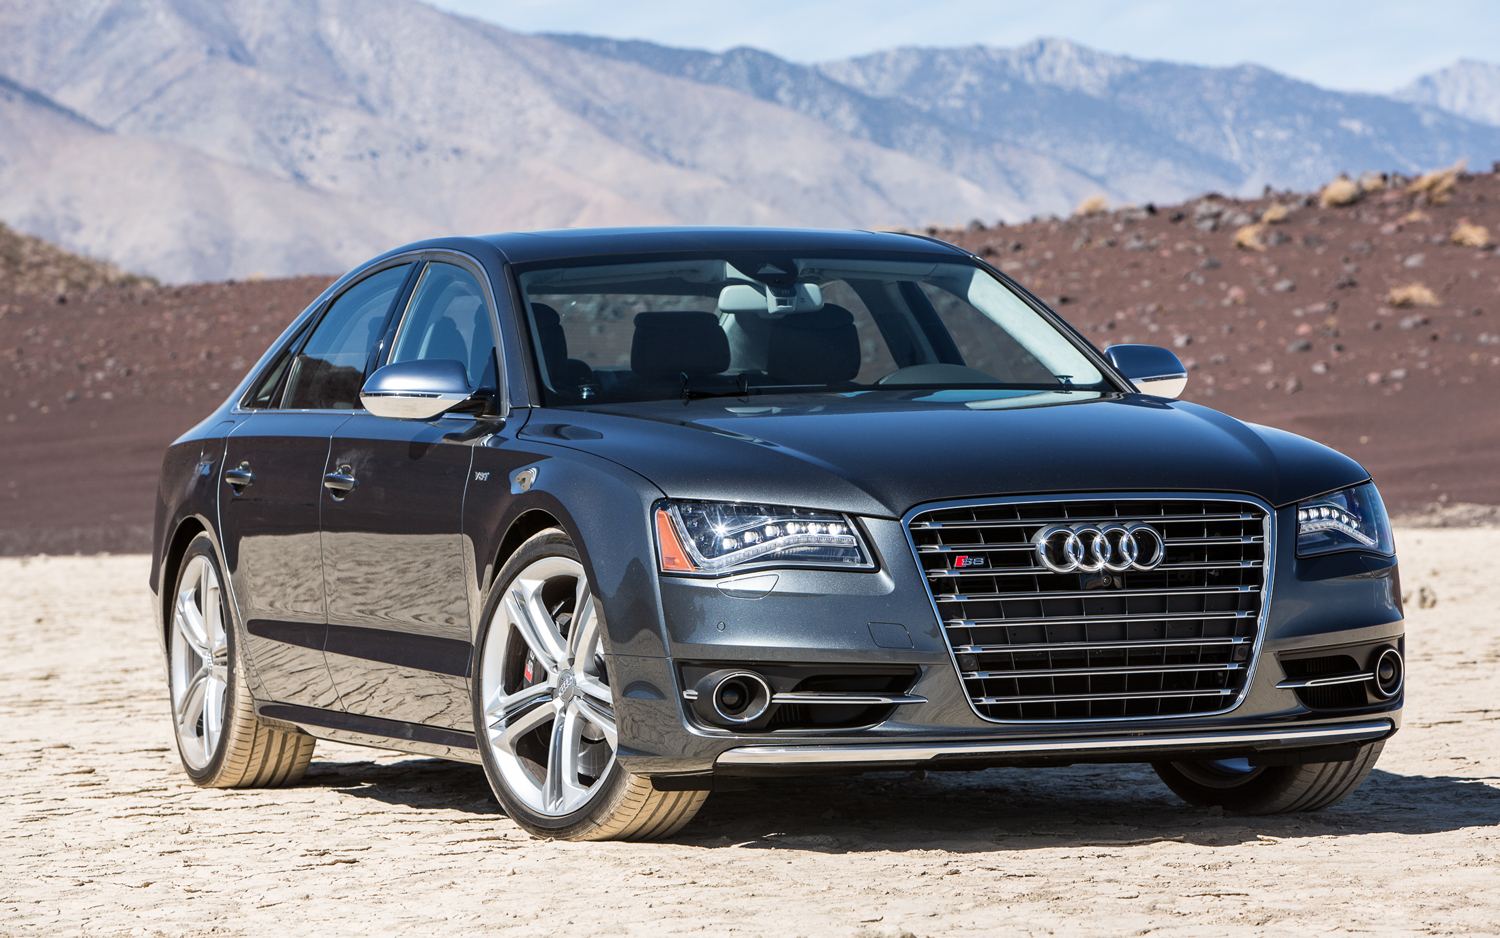 Super Sleeper: 2013 Audi S8 Sampled on World's Fastest Car Show